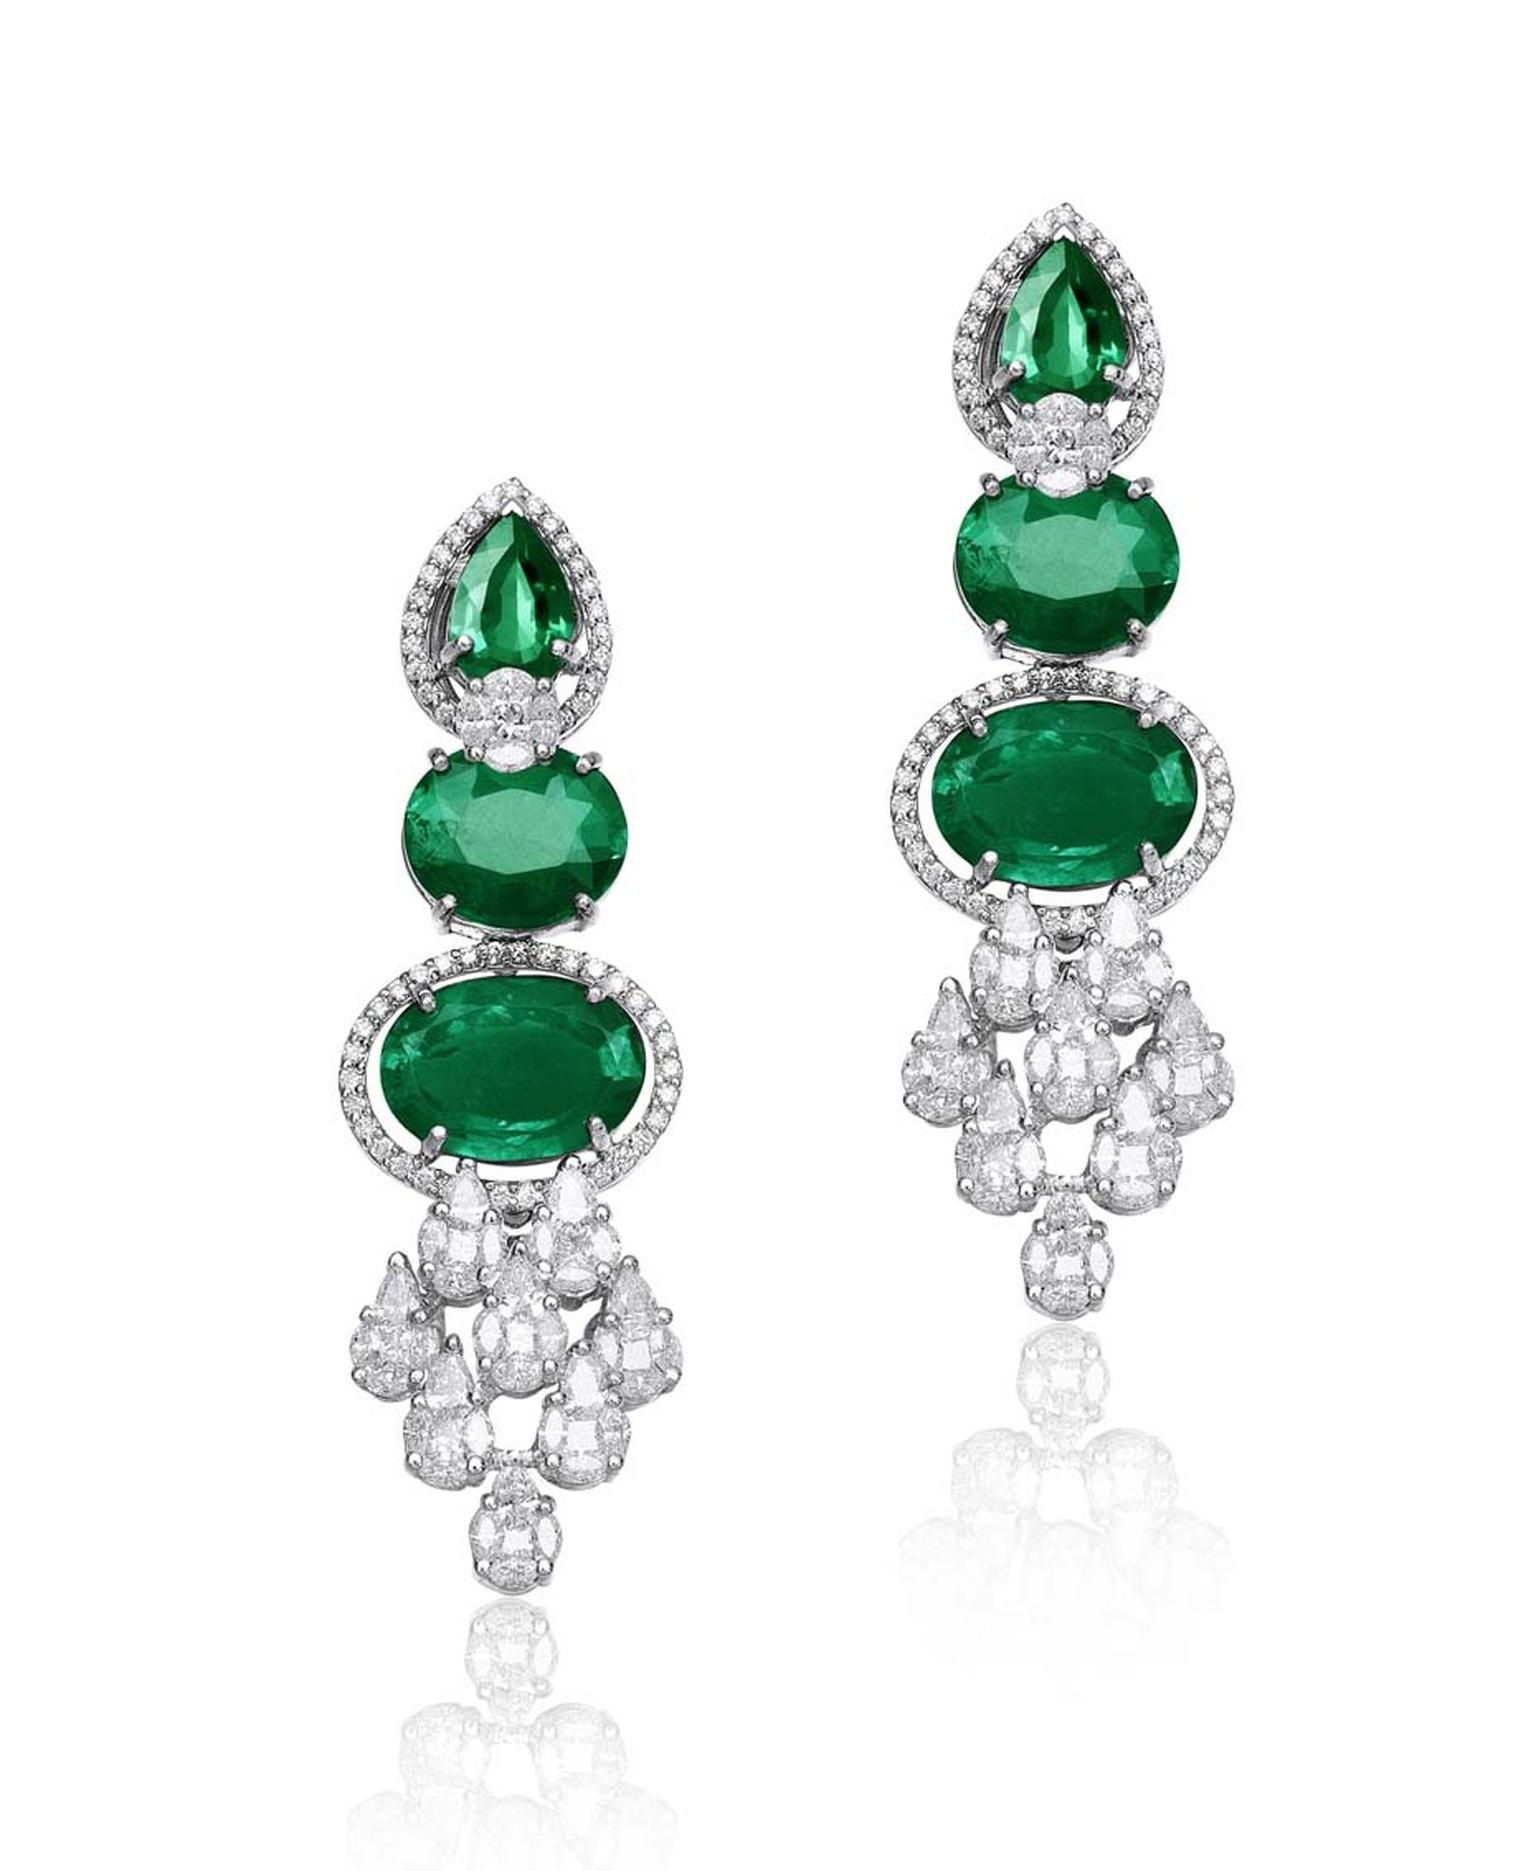 Varuna D Jani earrings featuring diamonds and emeralds